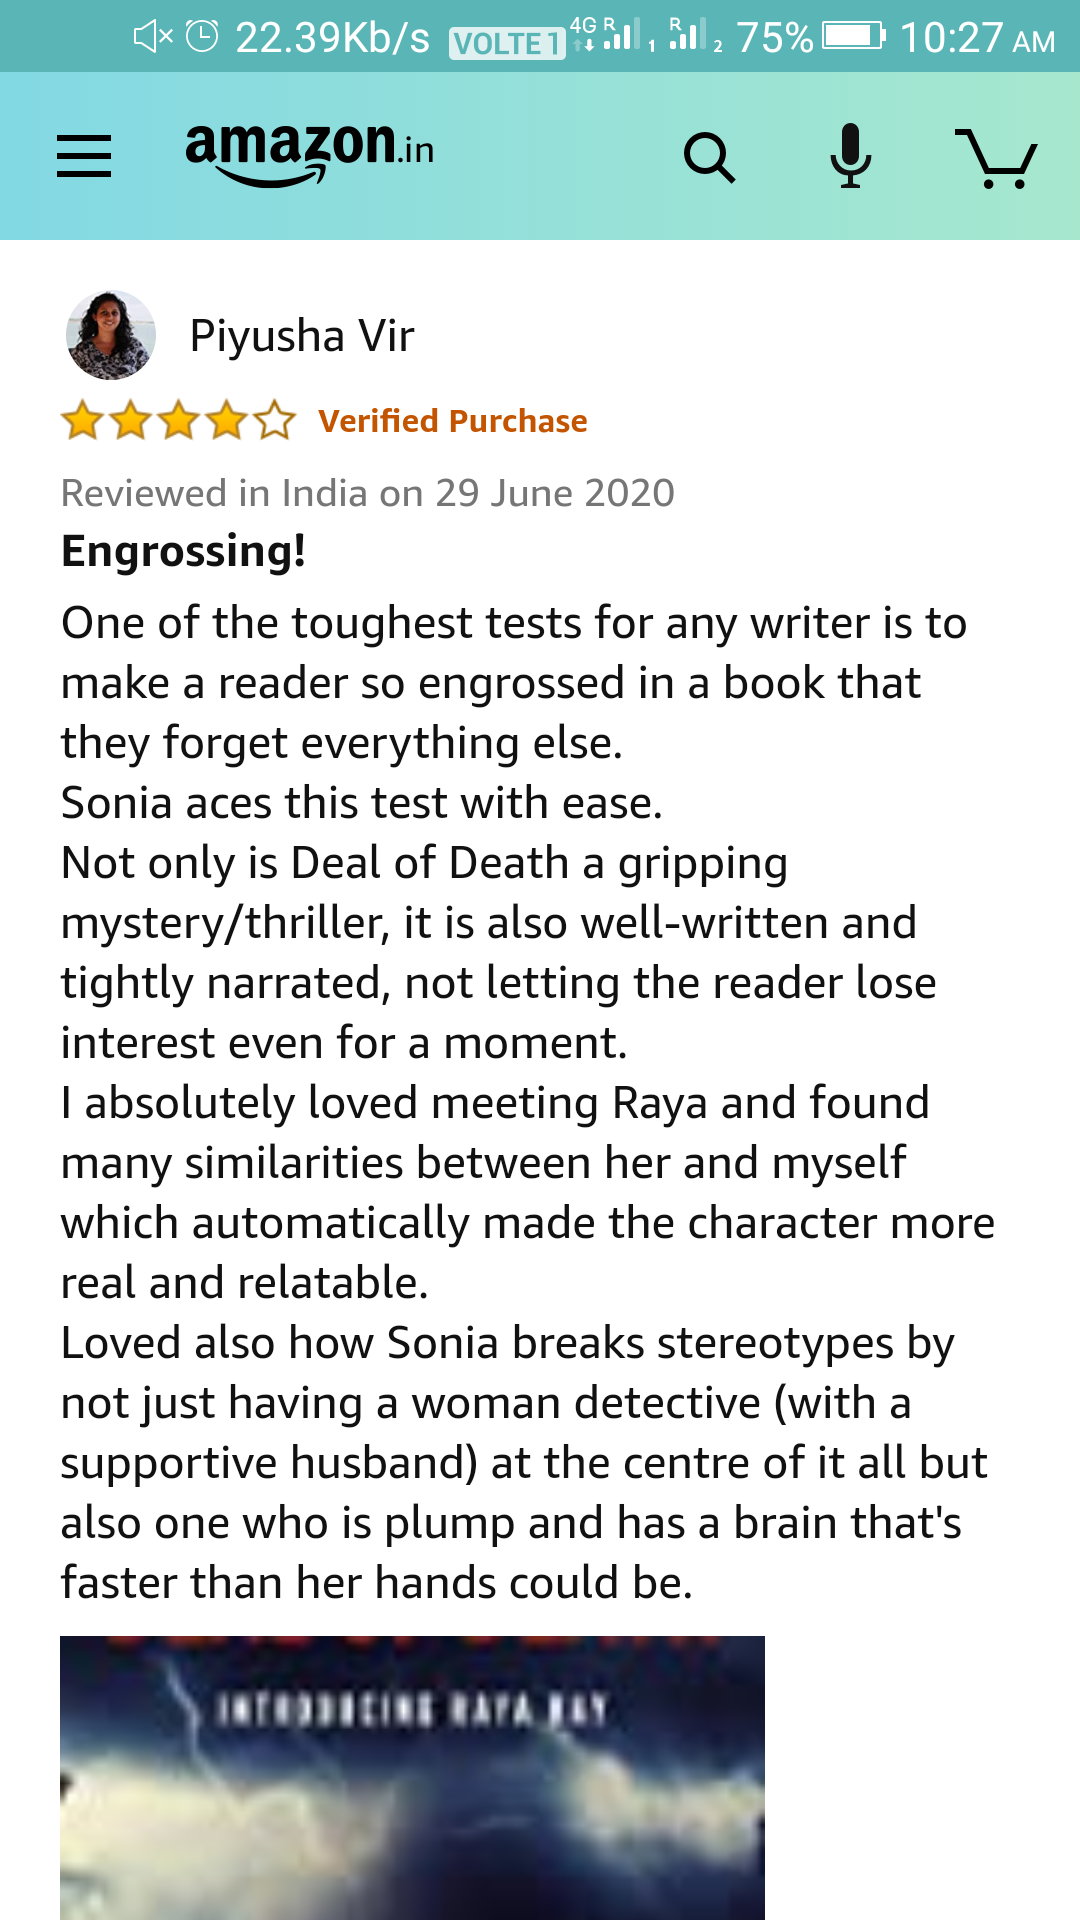 Review by Piyusha Vir